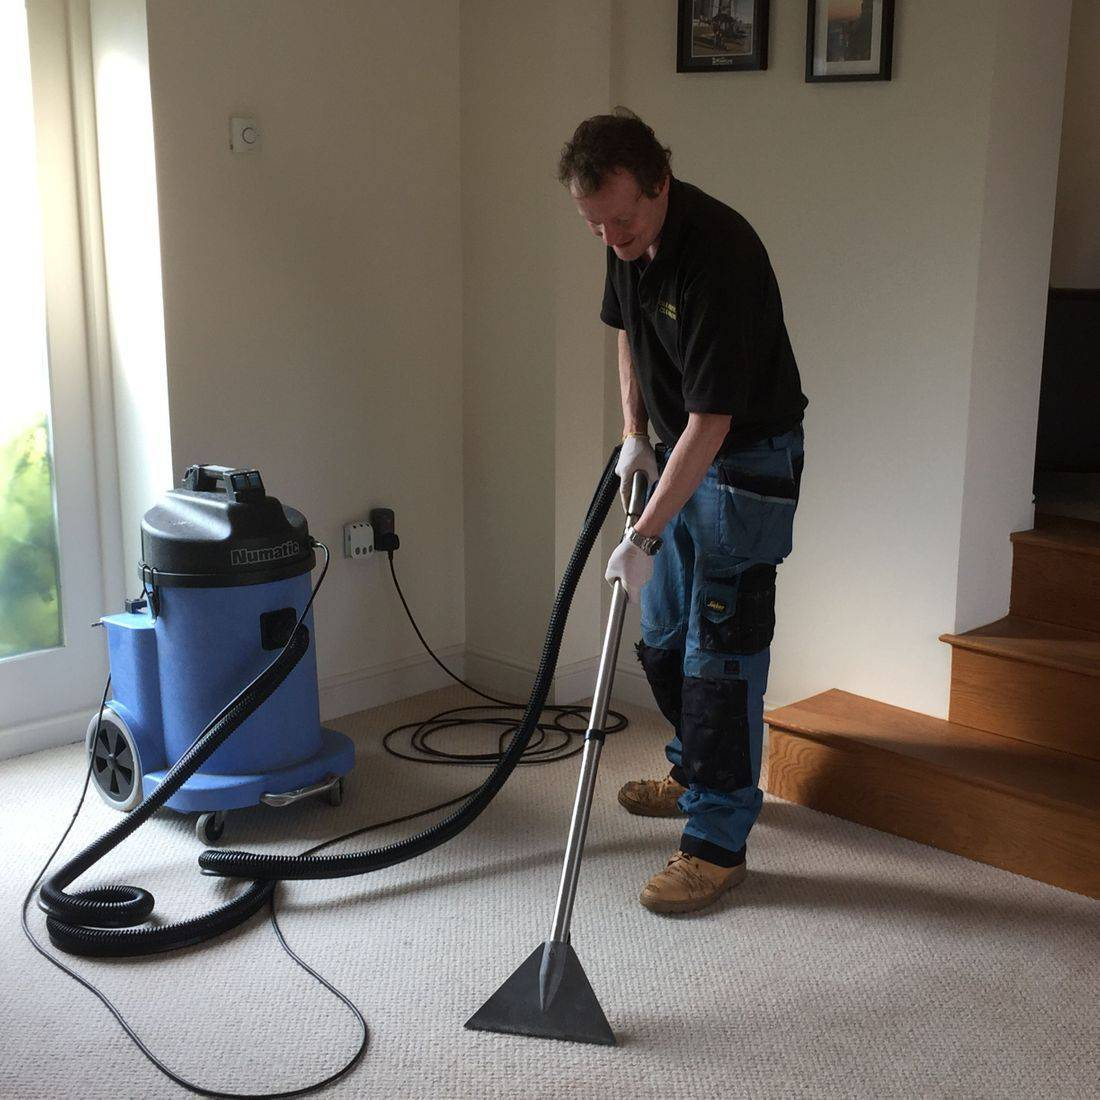 Carpet Cleaning in Leicester